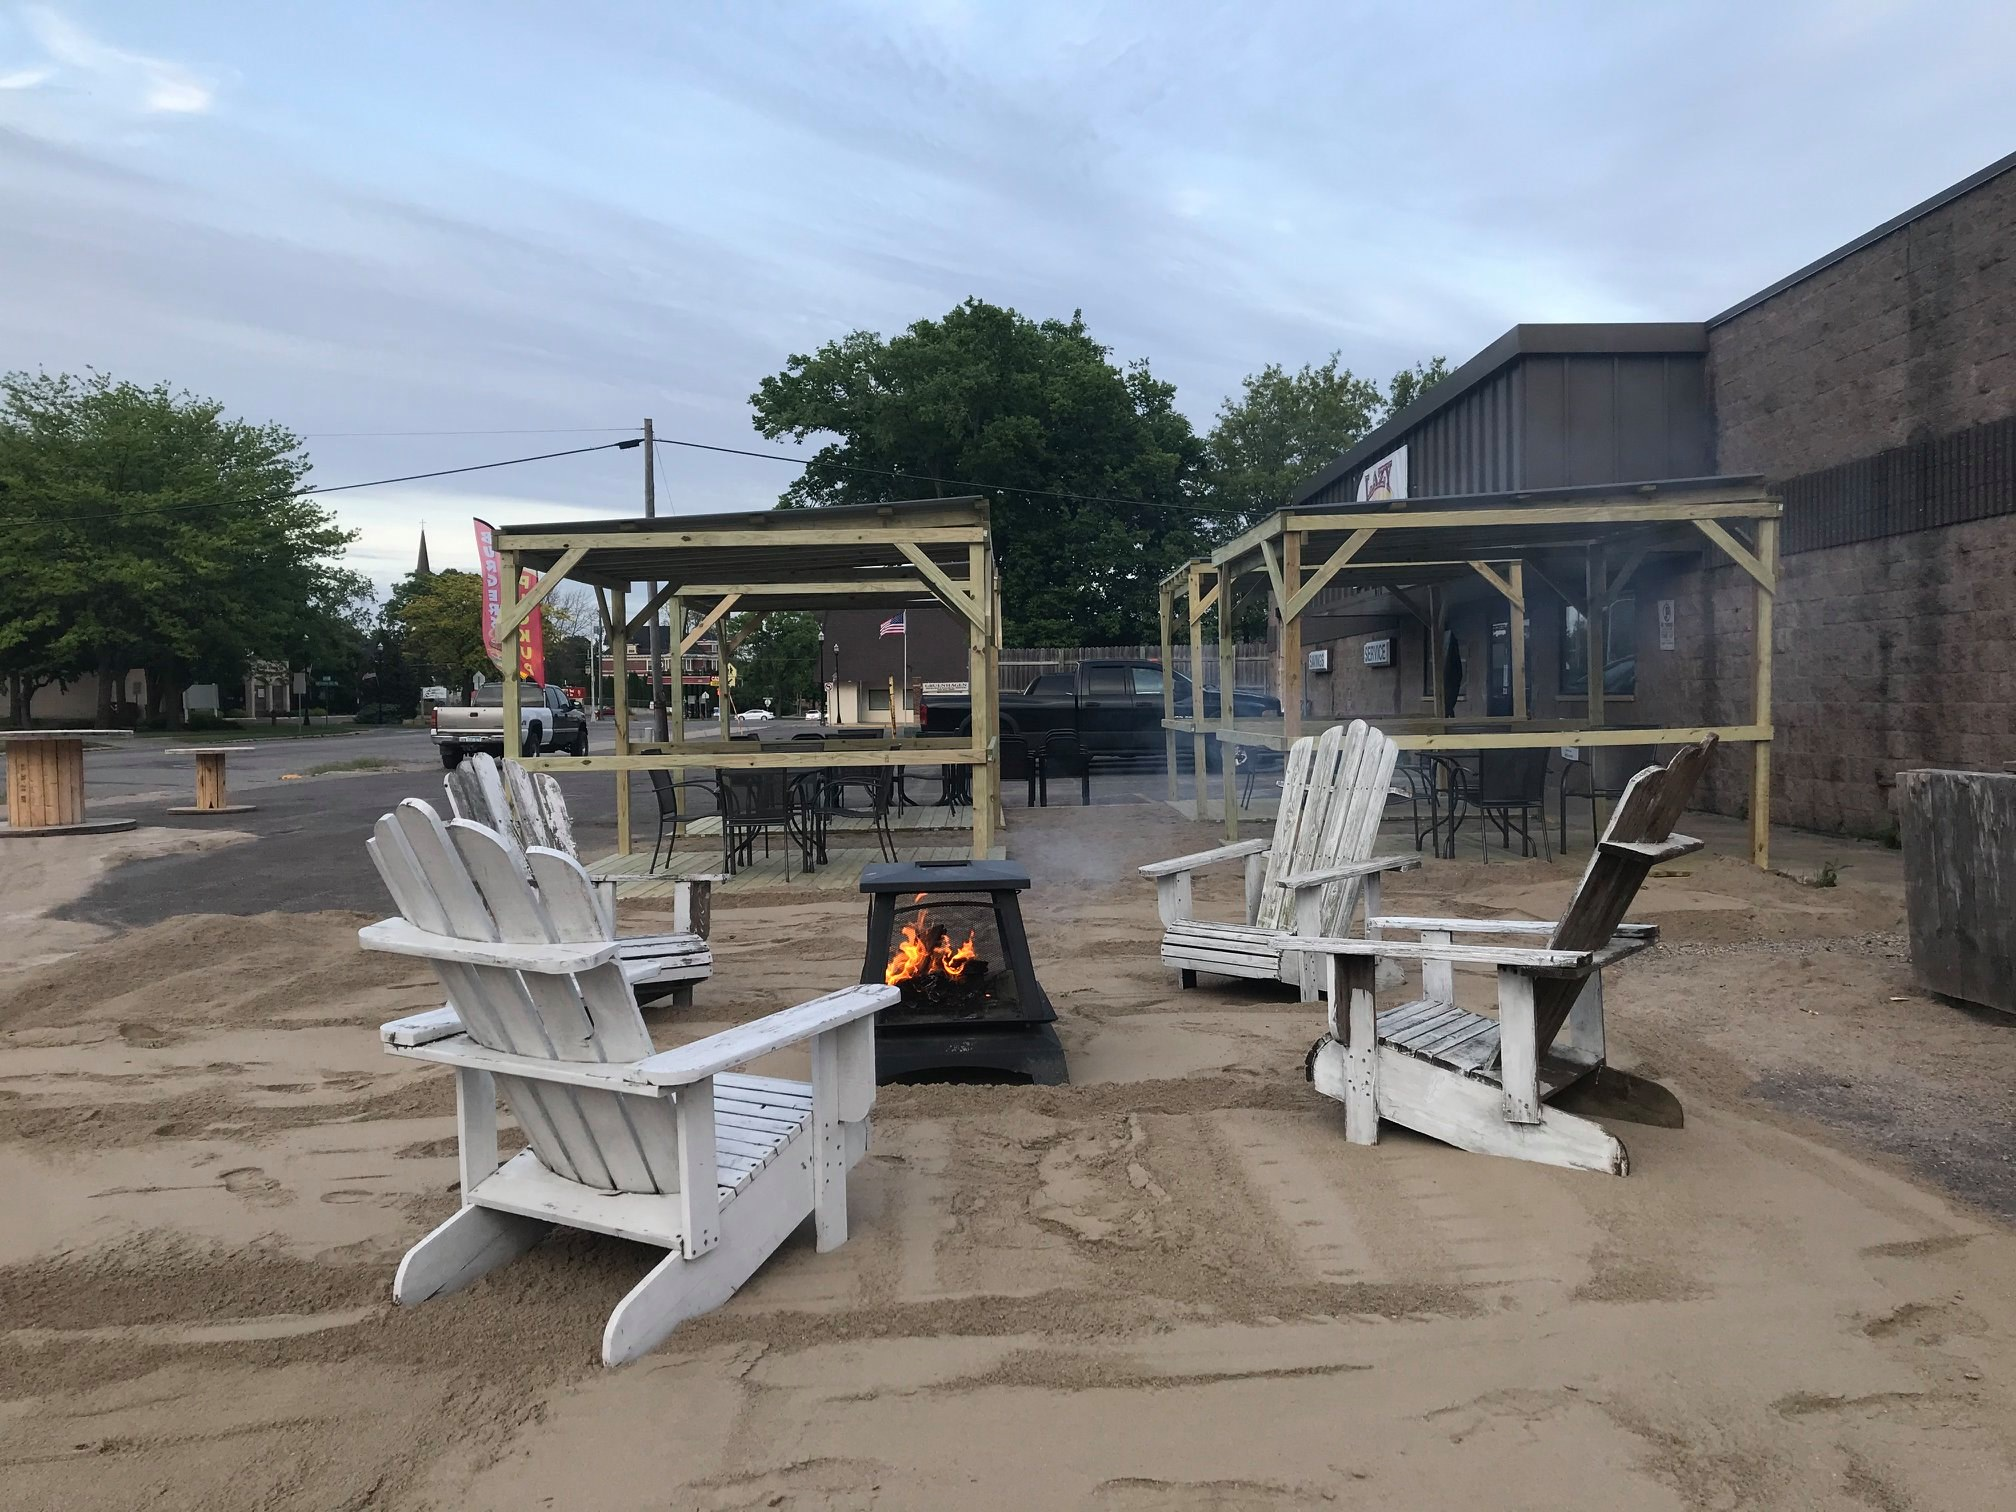 The outdoor patio area built at Lazy Loon Brewing during the coronavirus pandemic // Photo via Lazy Loon's Facebook